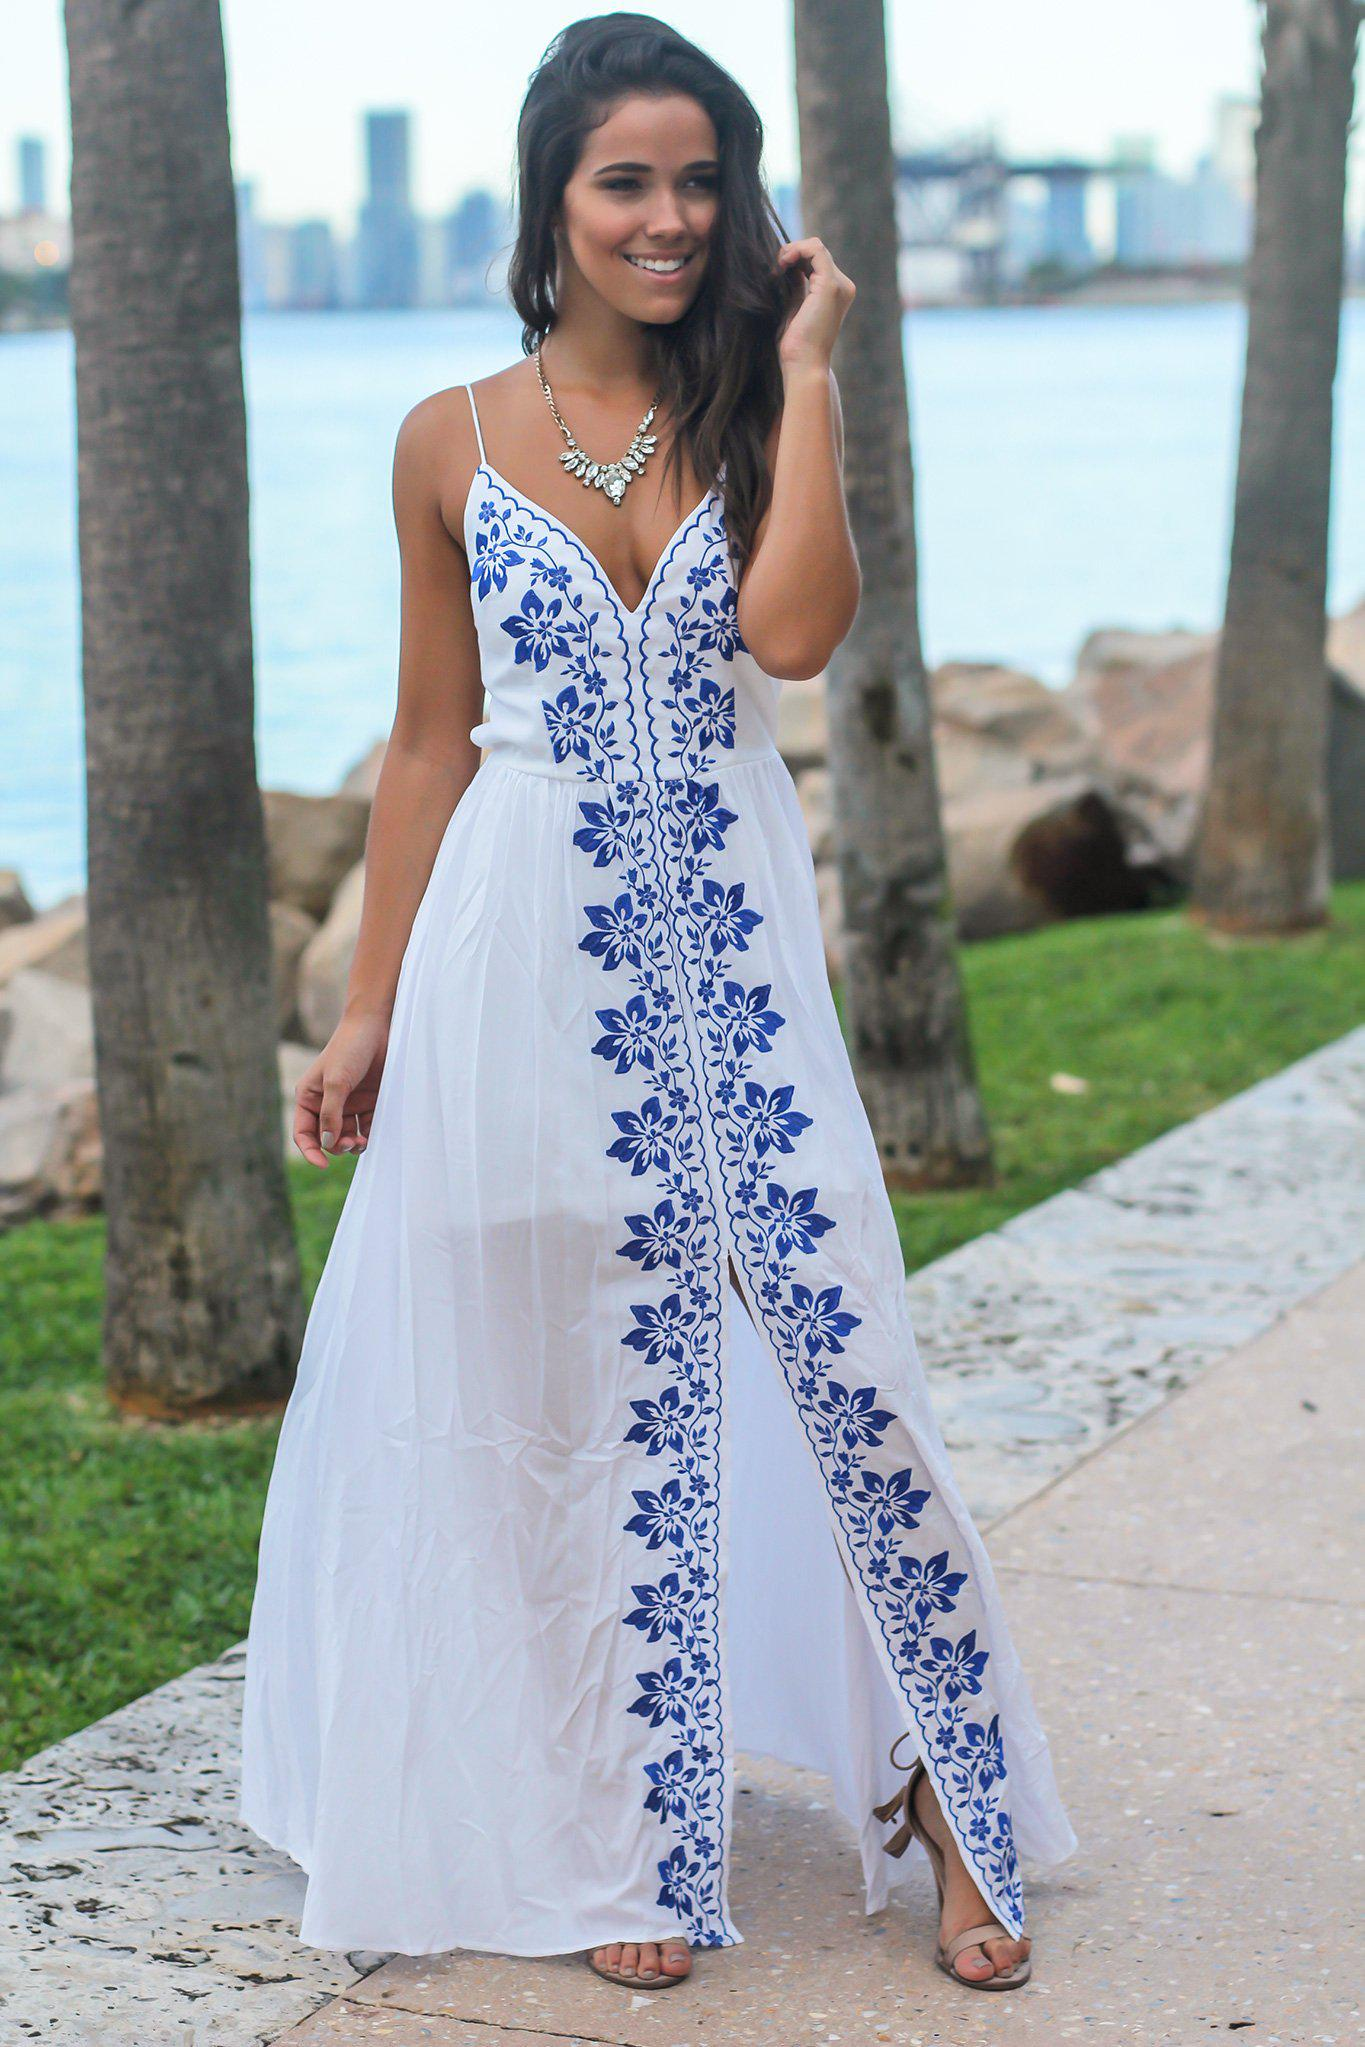 White Maxi Dress with Floral Embroidery